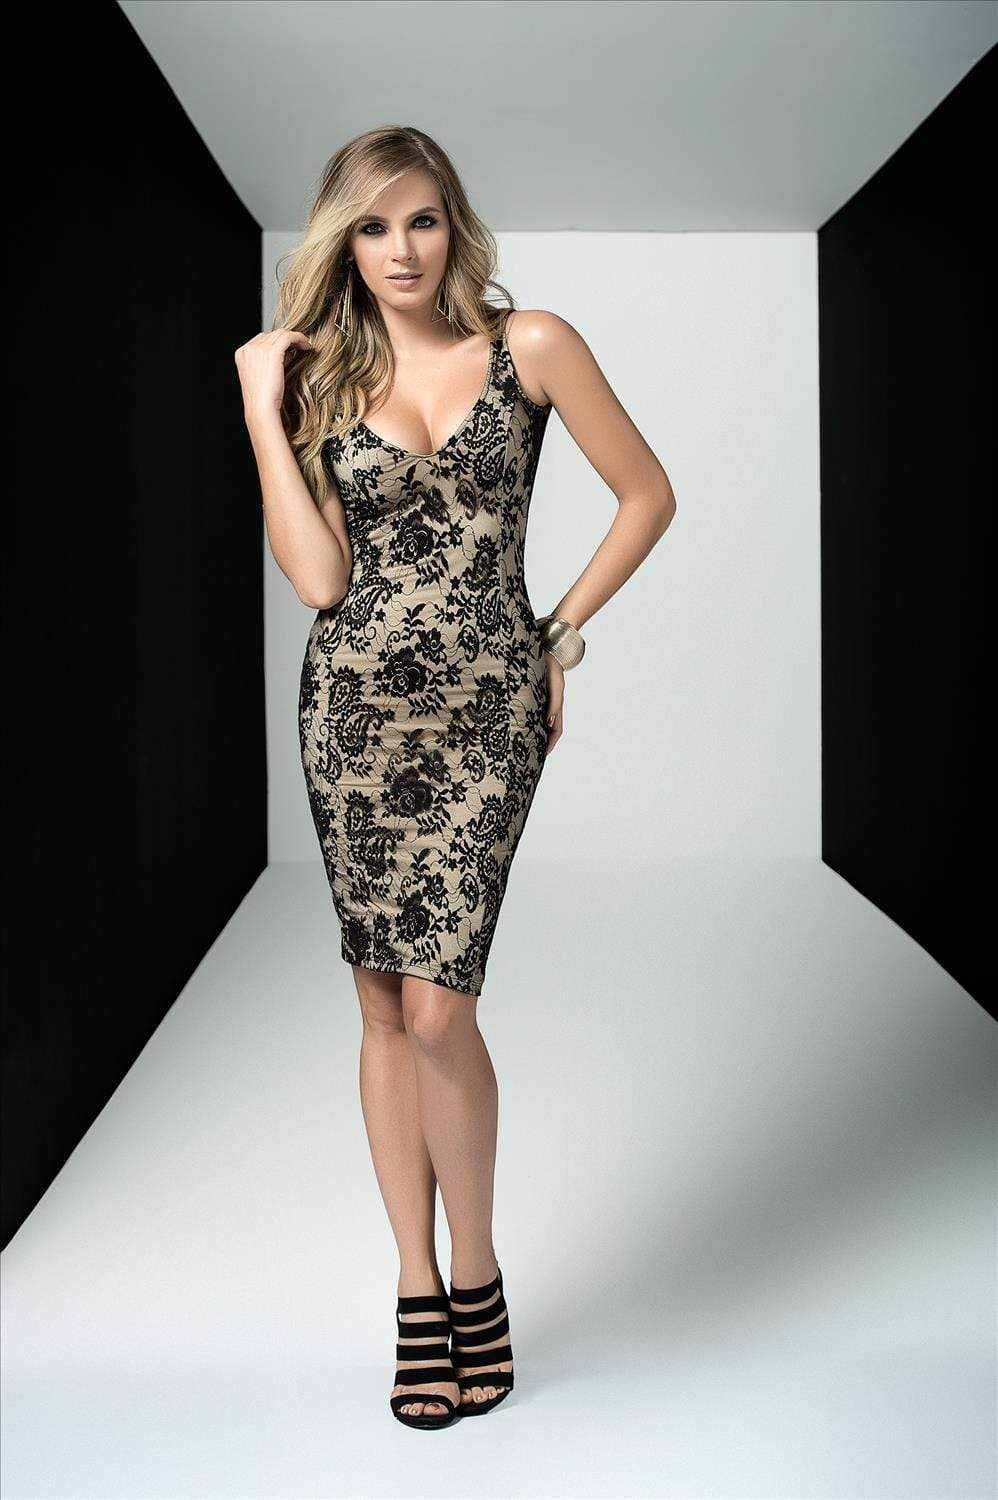 mapale Small / Black Red Floral Lace Overlay Midi Dress w/ Flesh Toned Under Dress (Black also available) AMPM-4434-S-BLACK Apparel & Accessories > Clothing > Dresses